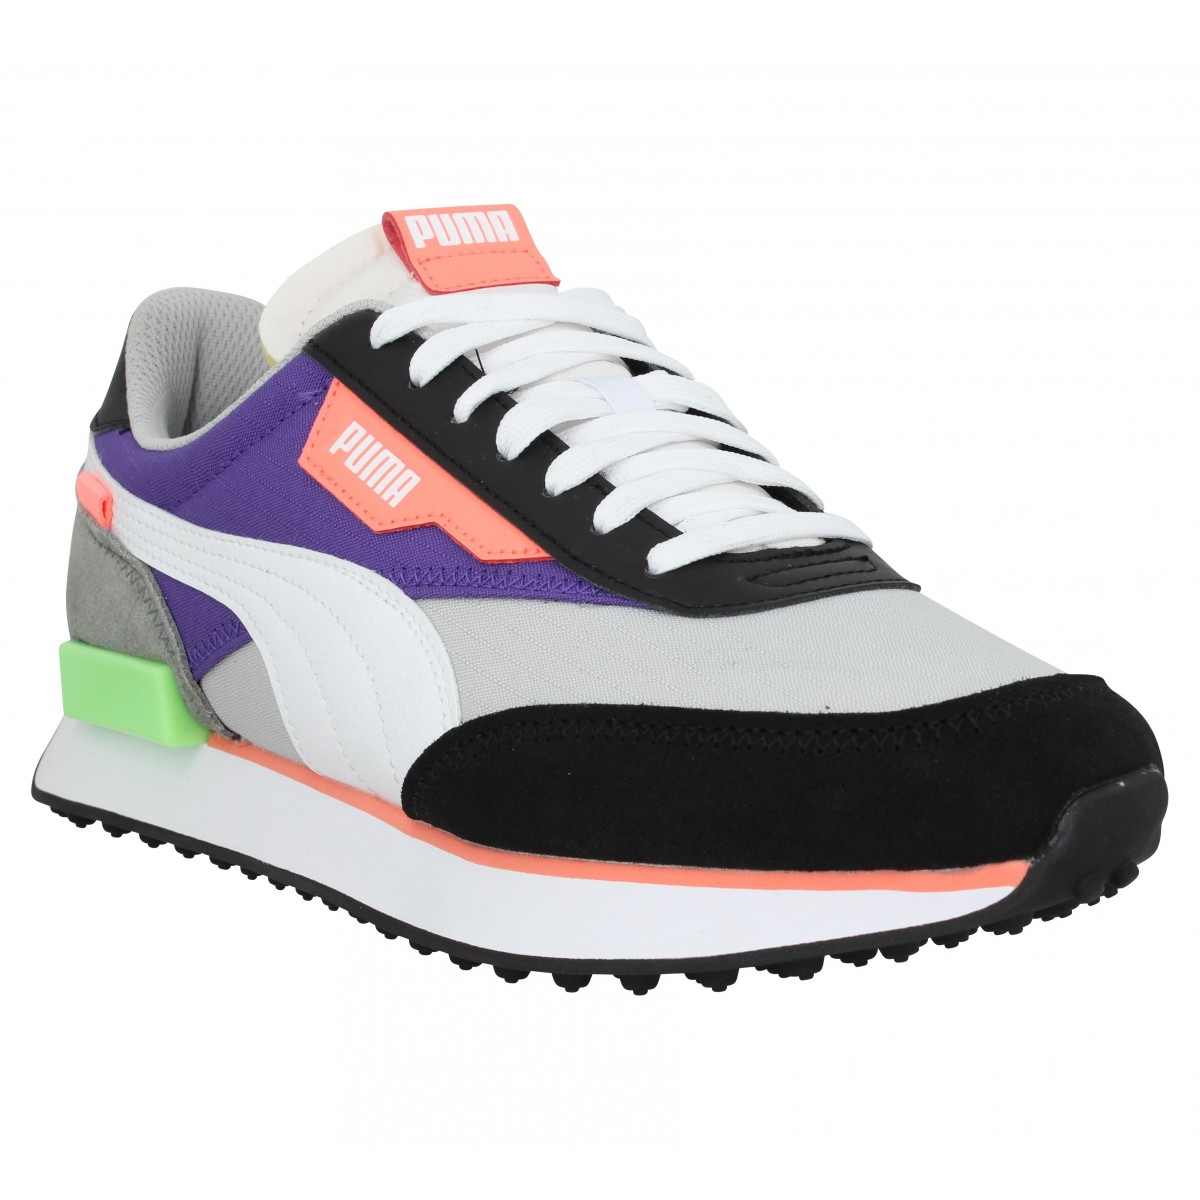 Baskets PUMA Future Rider Play On velours toile Homme Gris Violet